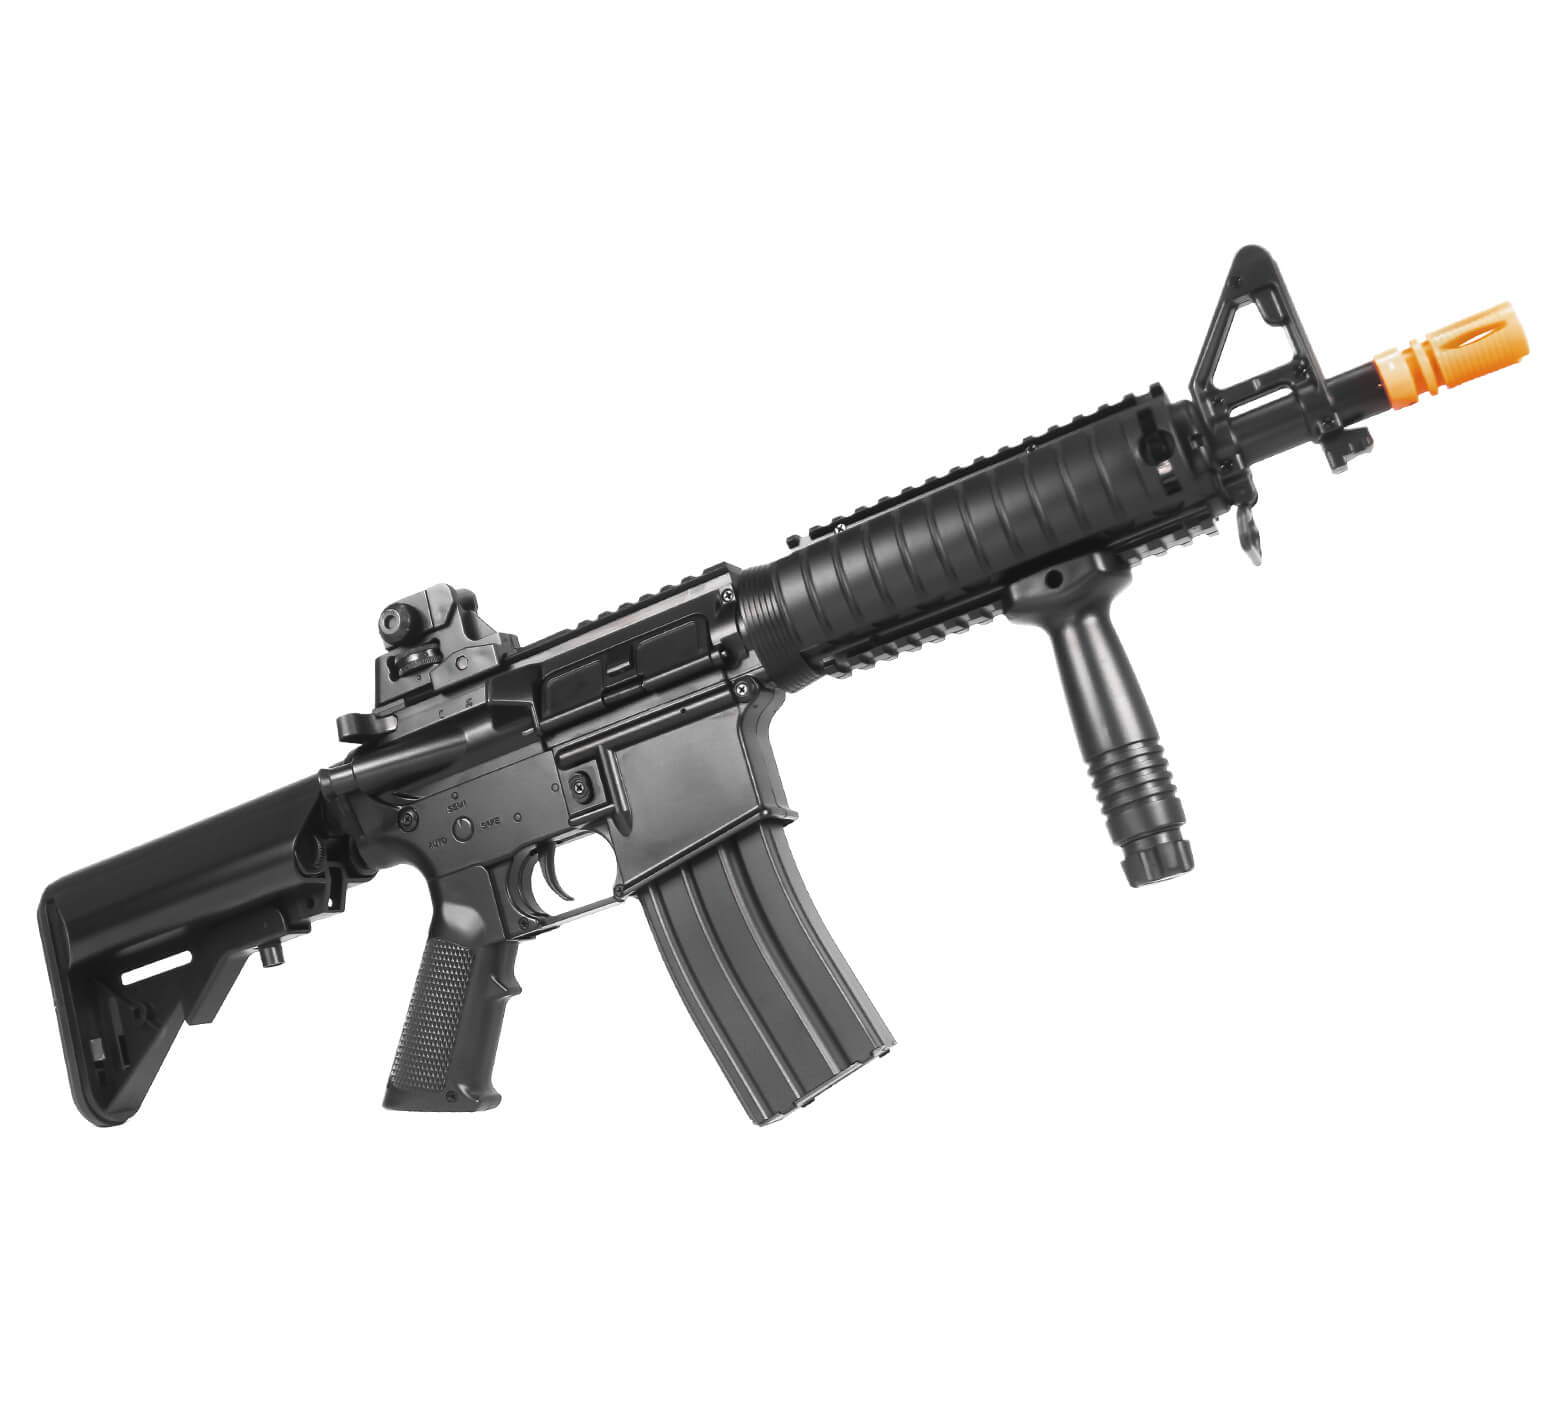 Rifle Airsoft M4 CQB H. (CM176) Elétrica 6 mm